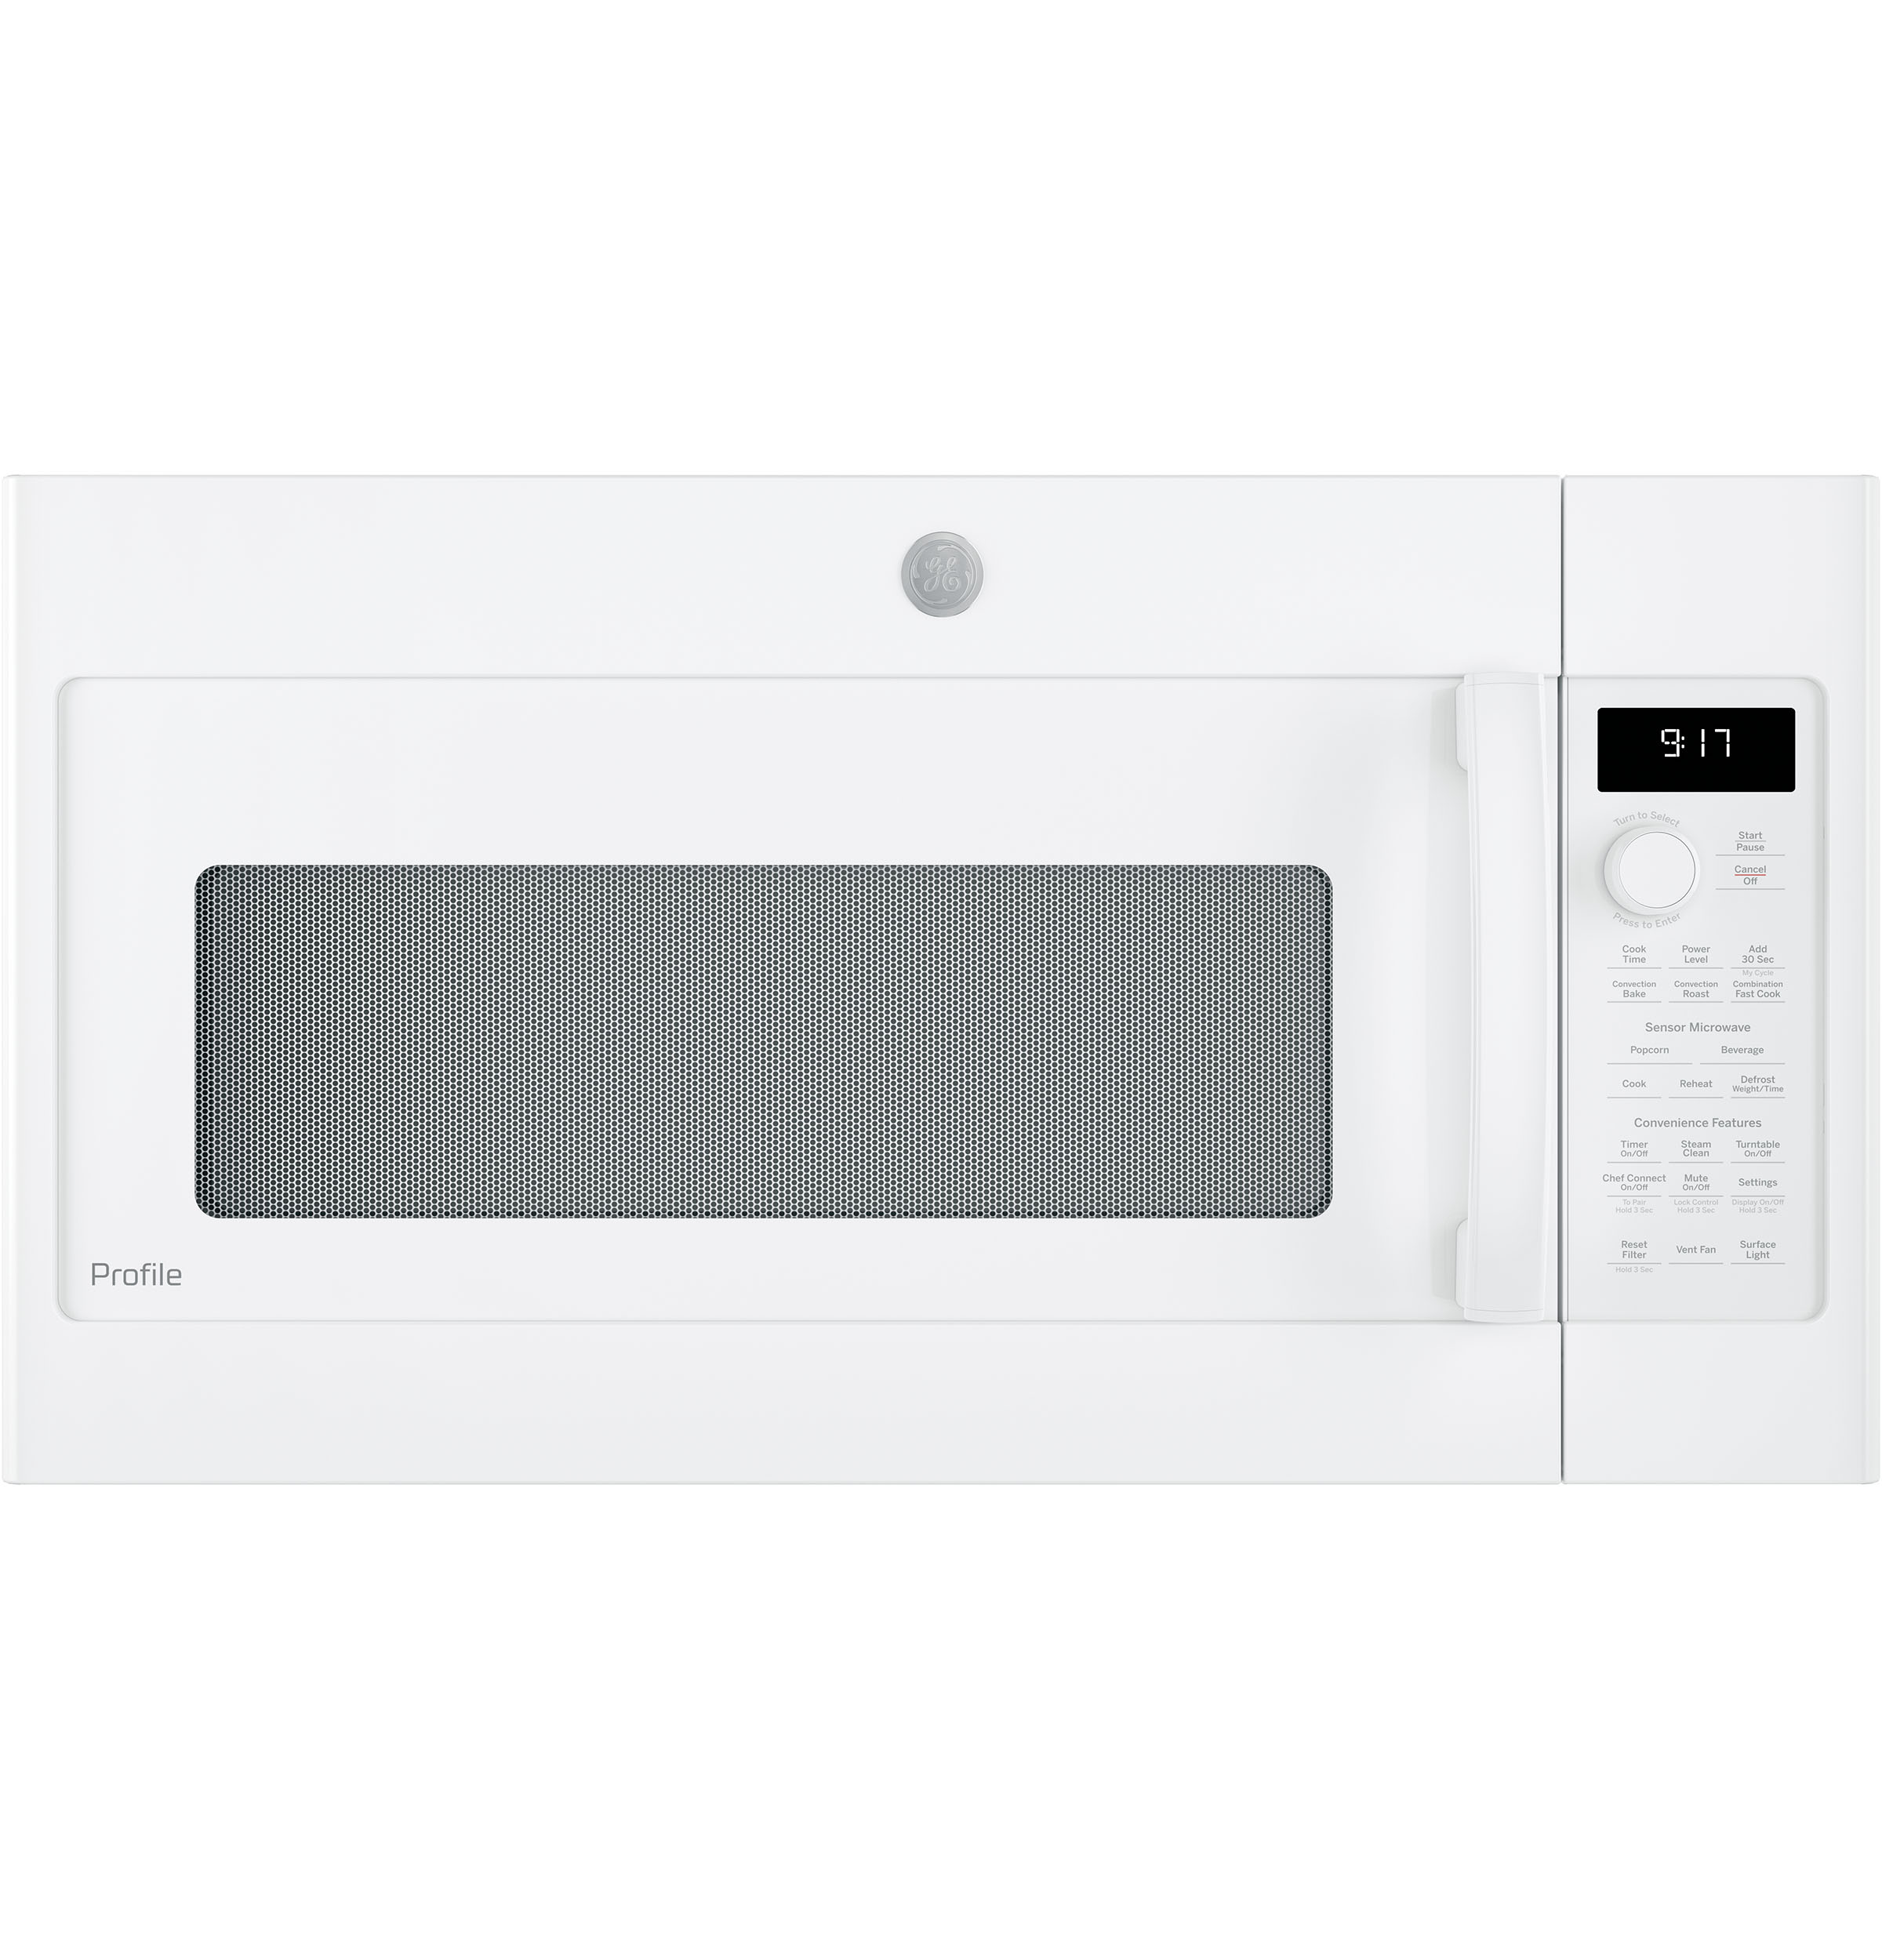 Whirlpool white ice microwave canada - Product Image